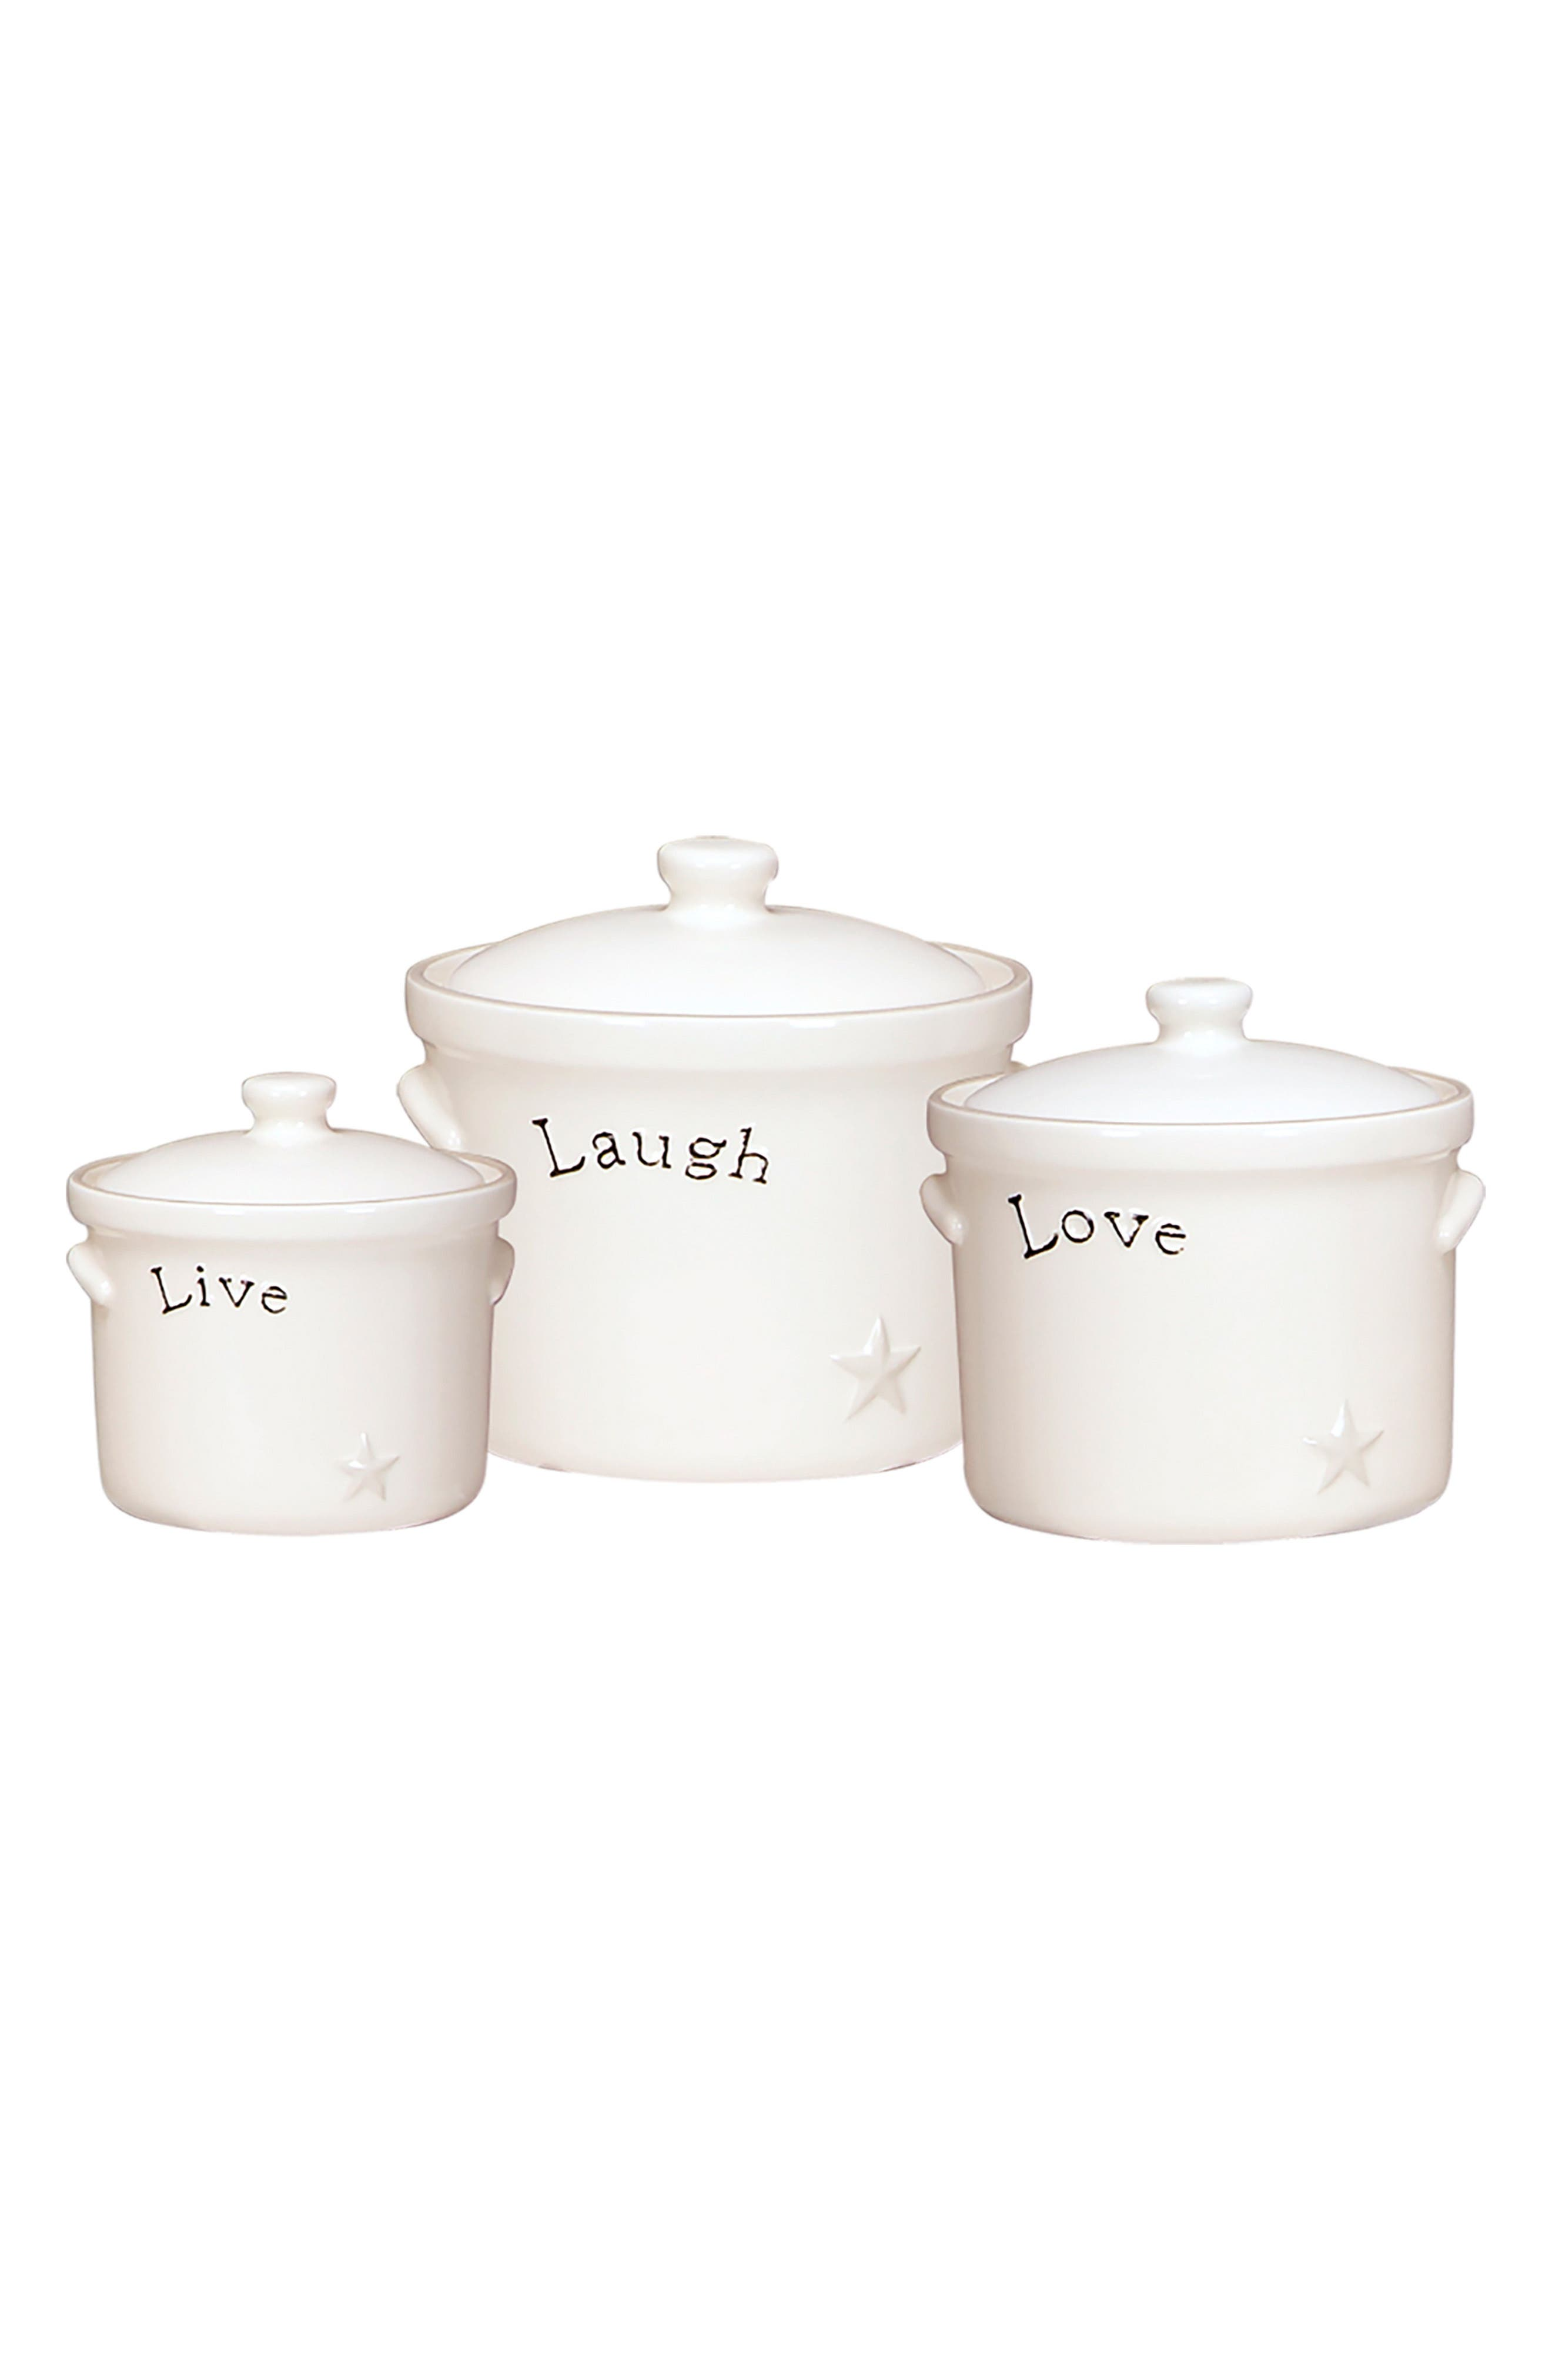 Set of 3 Live Laugh Love Canisters,                             Main thumbnail 1, color,                             100